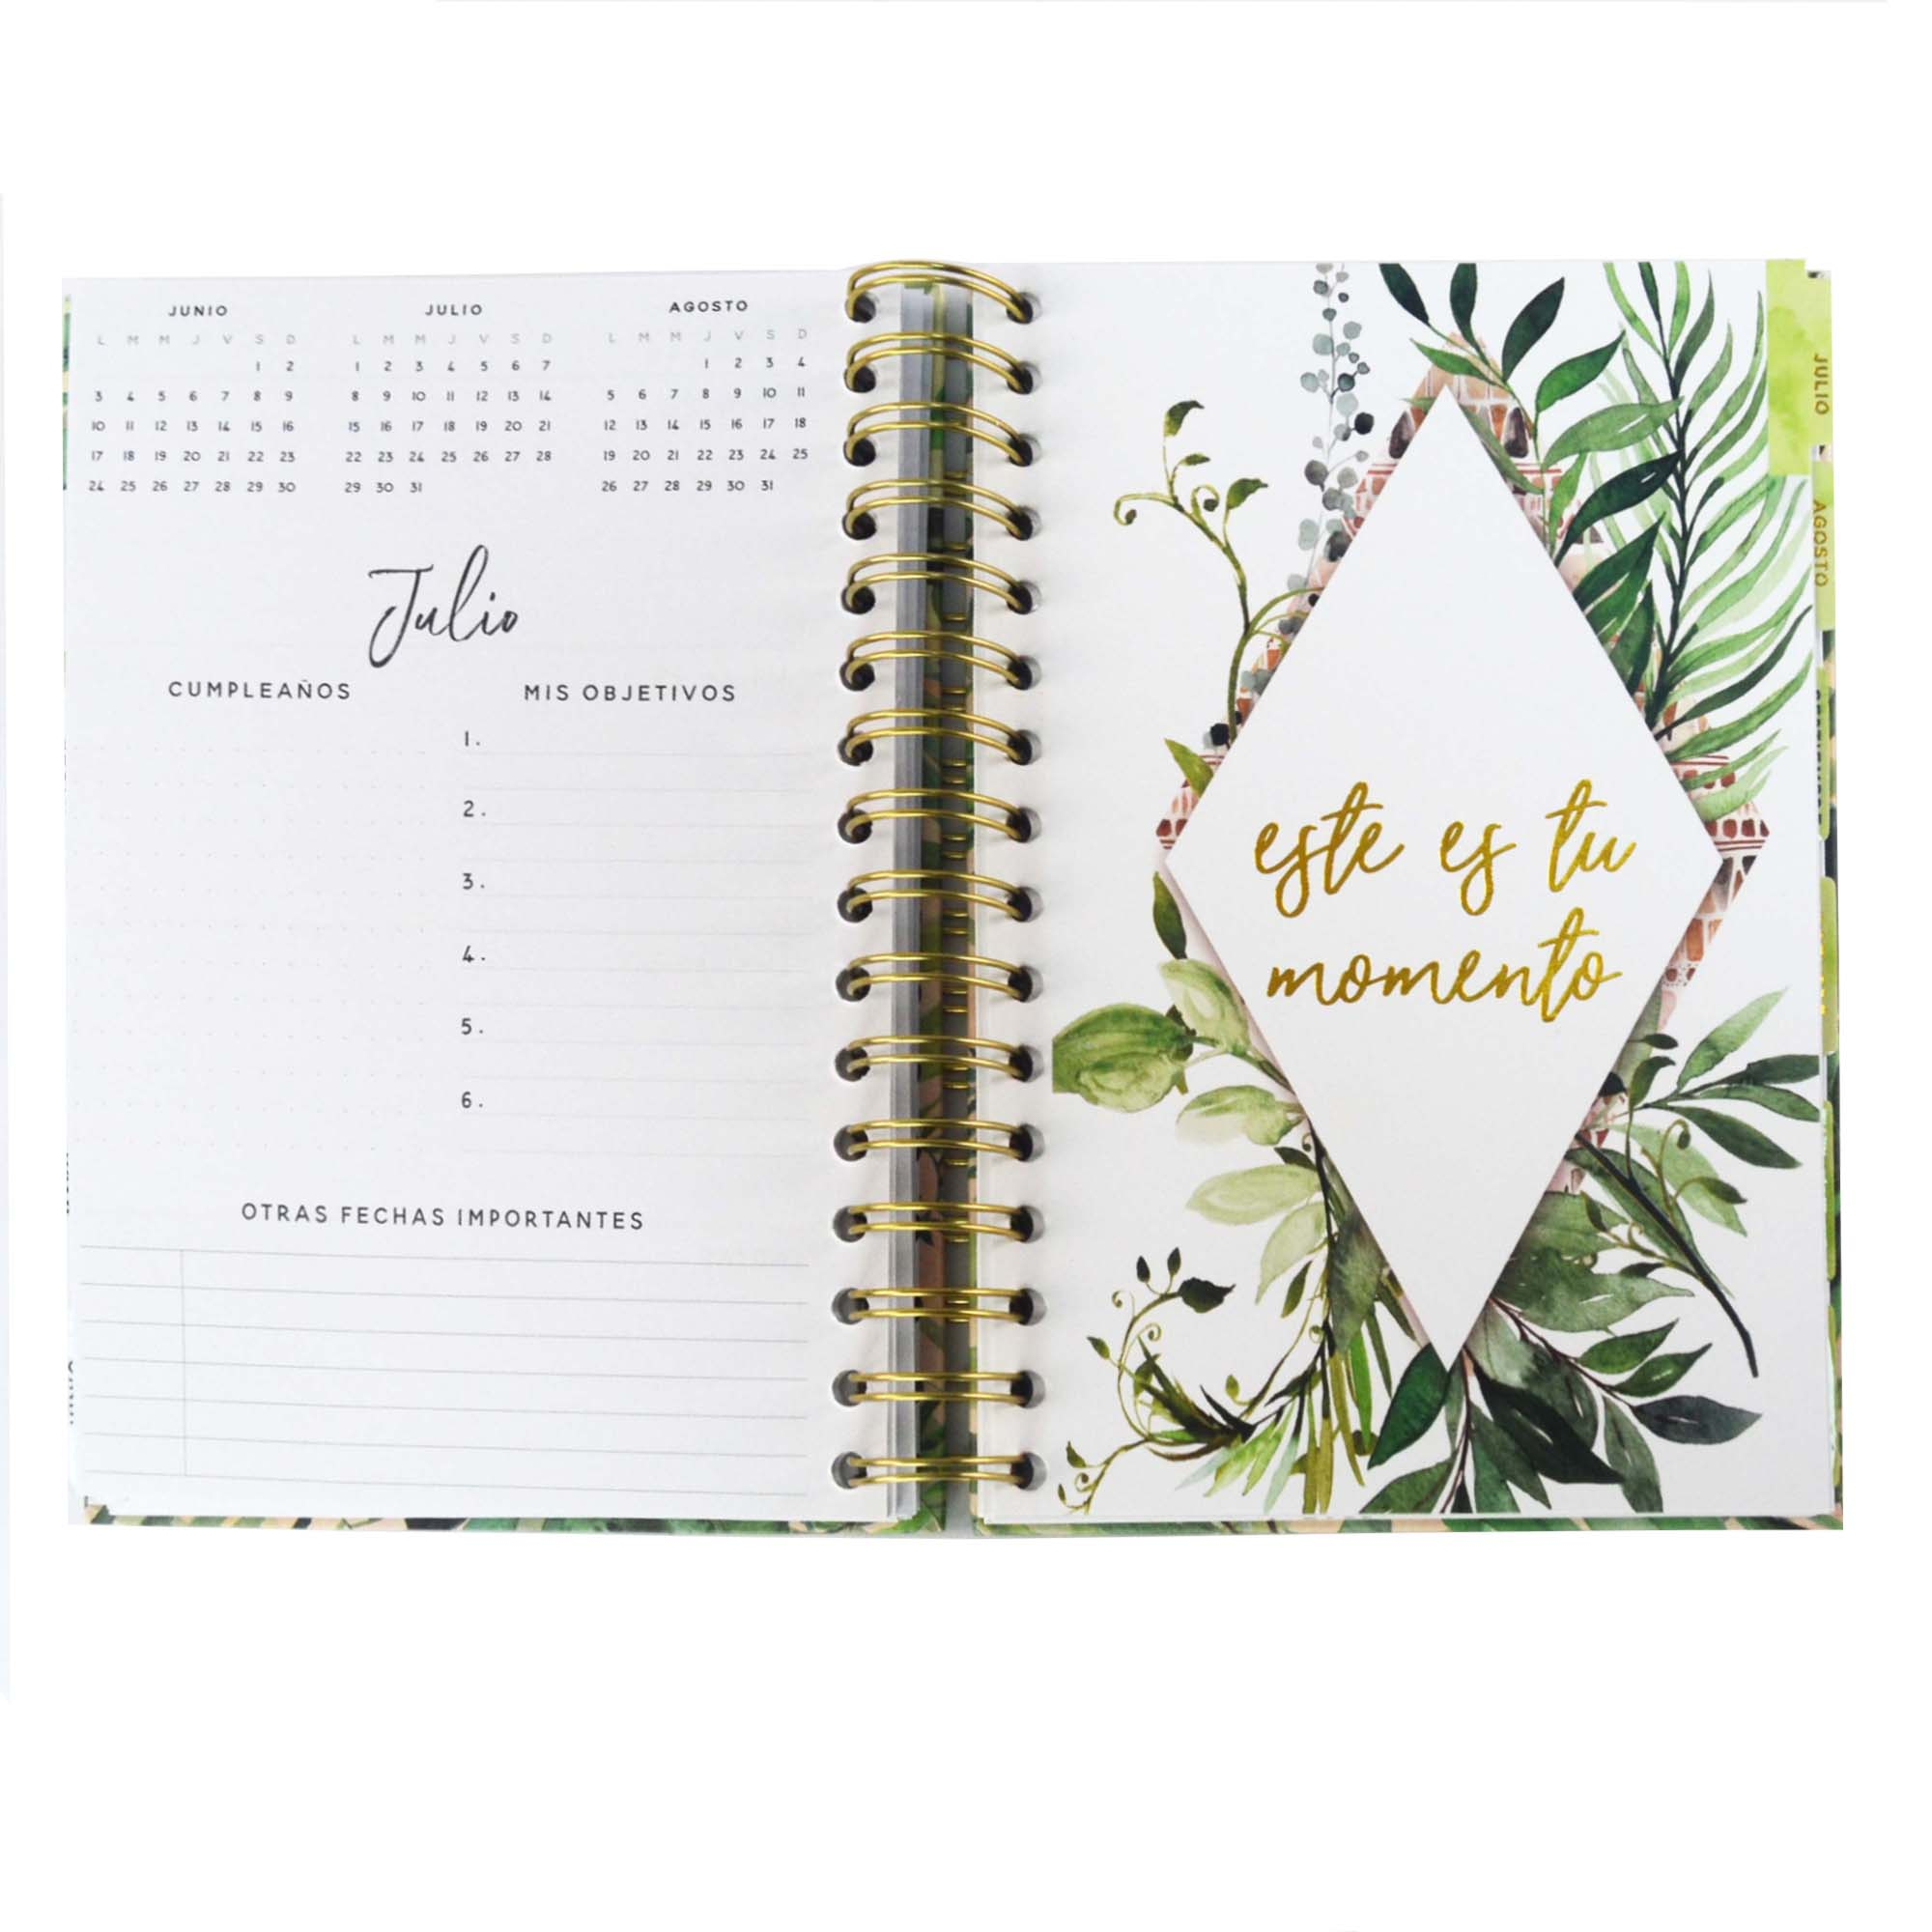 Hard cover draht O bindung spirale nach druck journal diaries notebook agenda planer